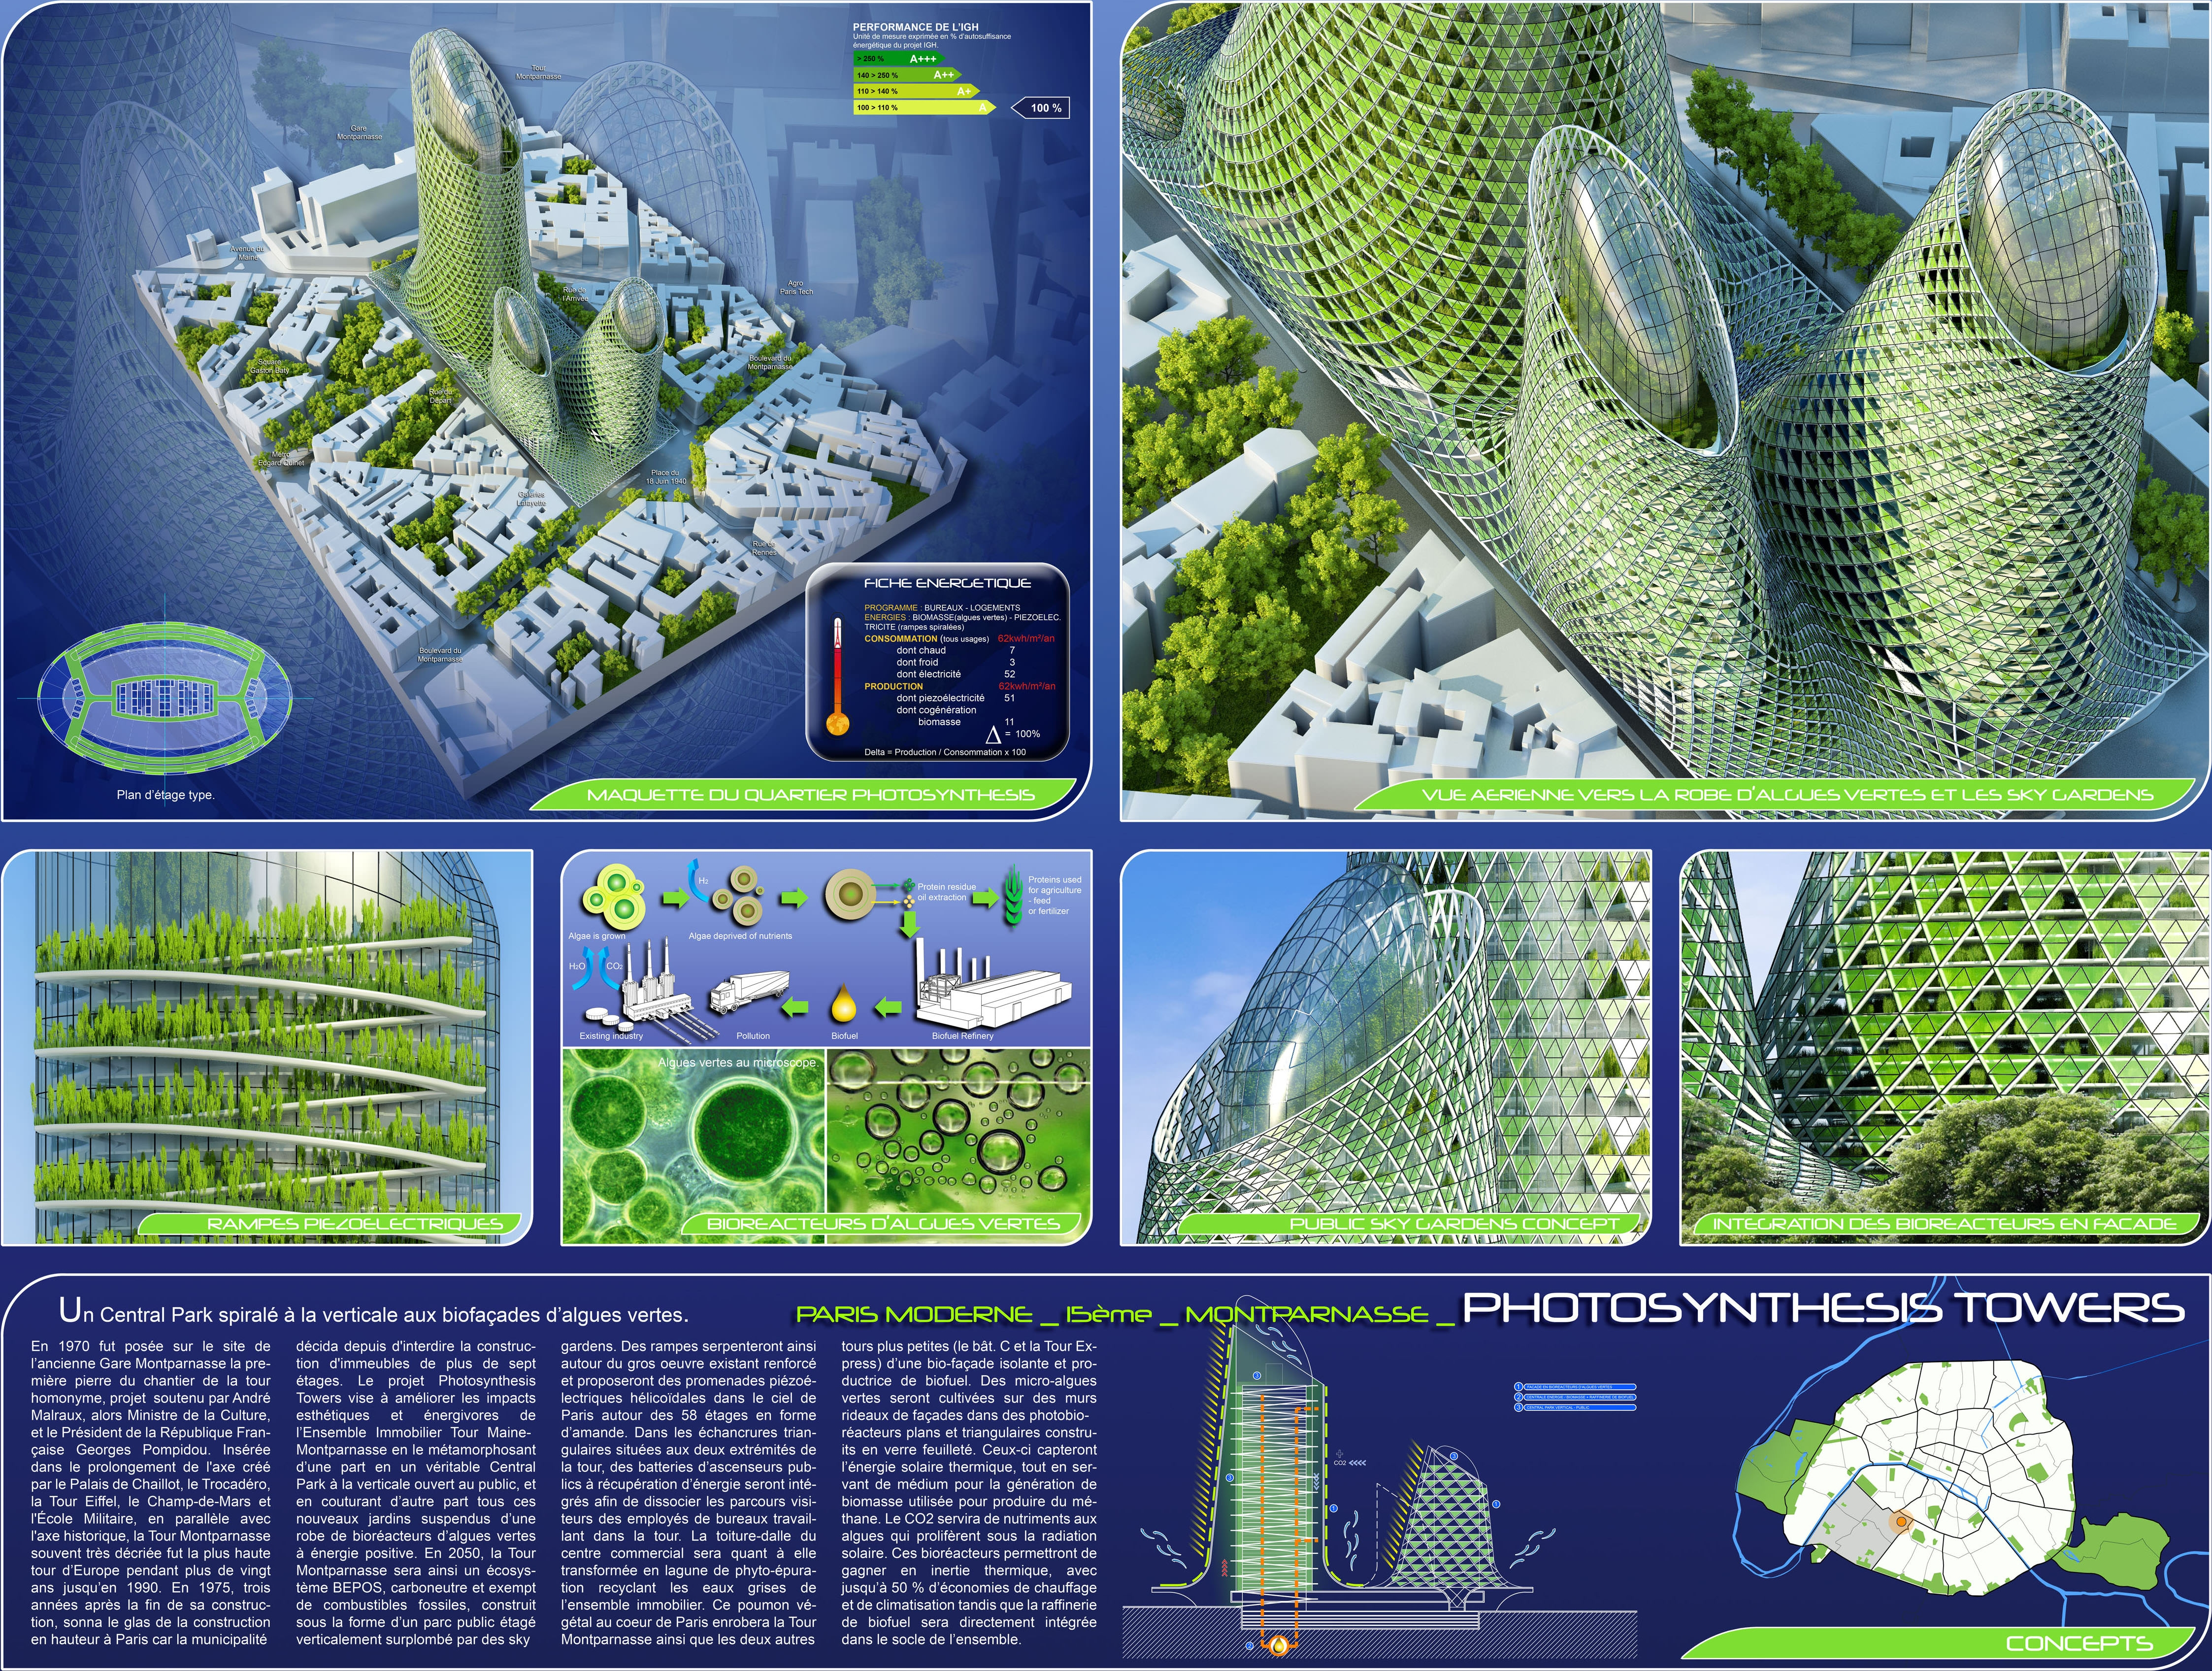 Photosynthesis Towers, Paris 2050